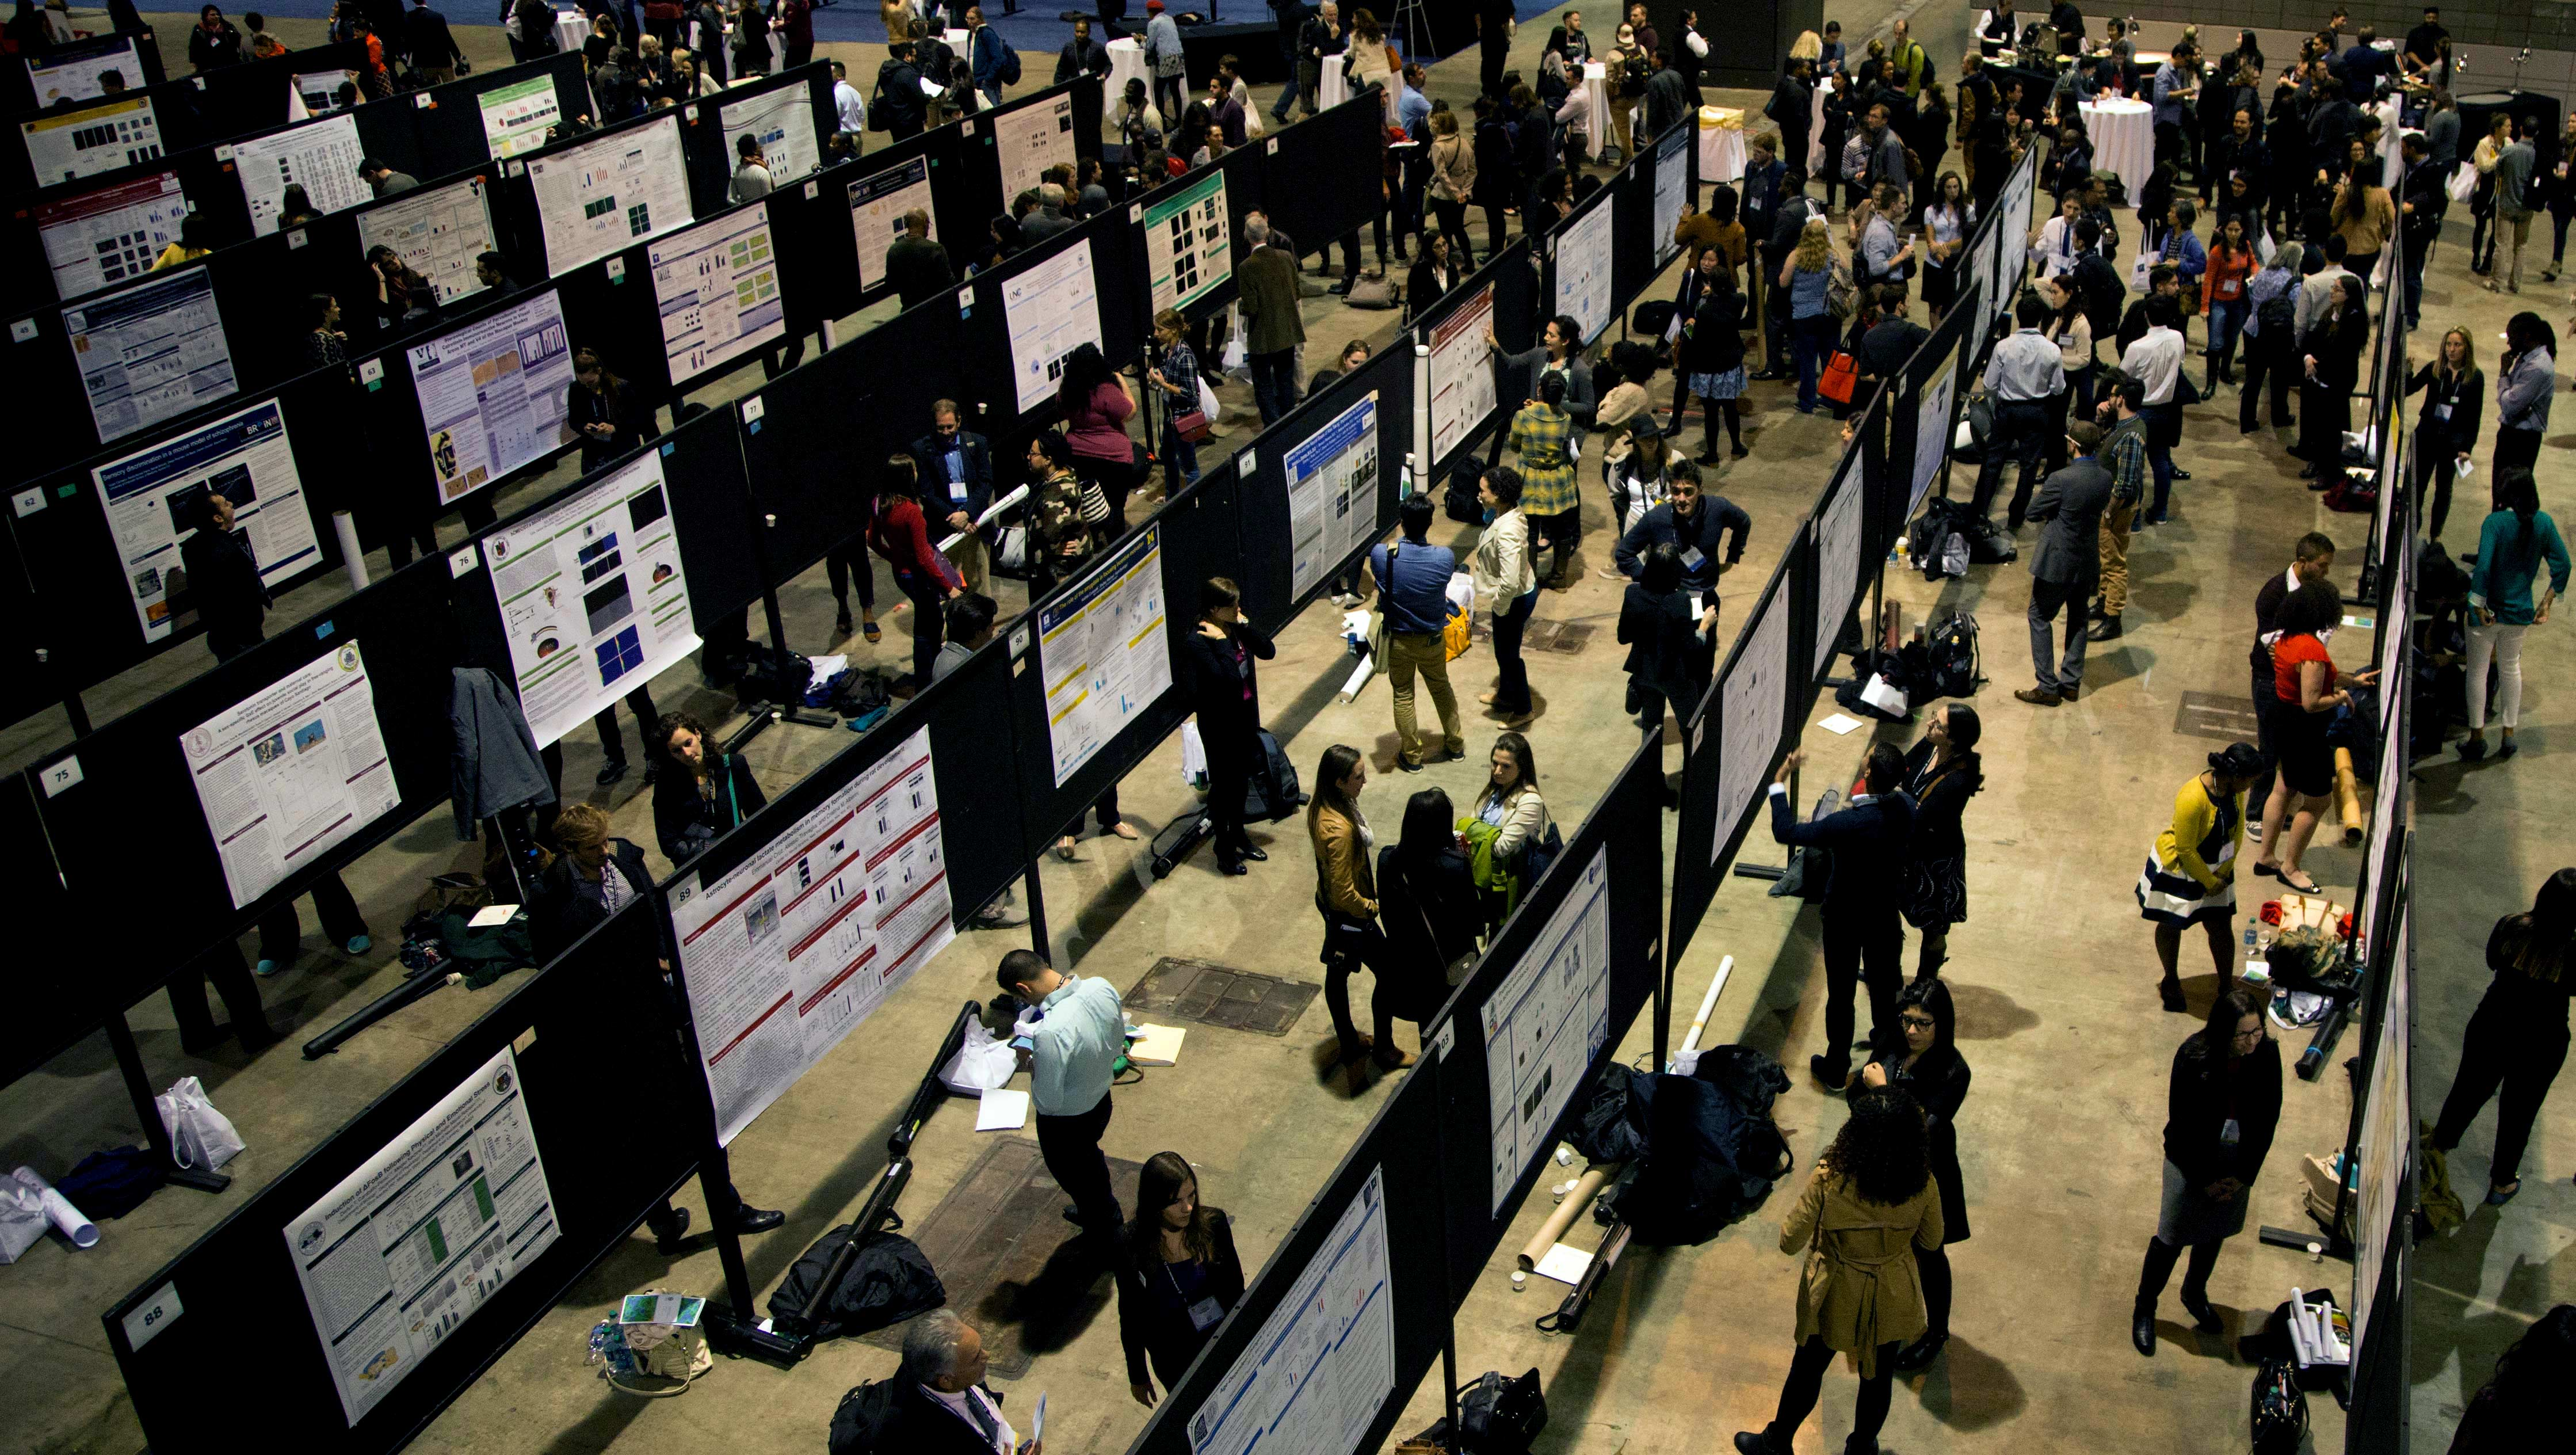 Male and female neuroscientists present their research findings at a conference via posters set up in rows.